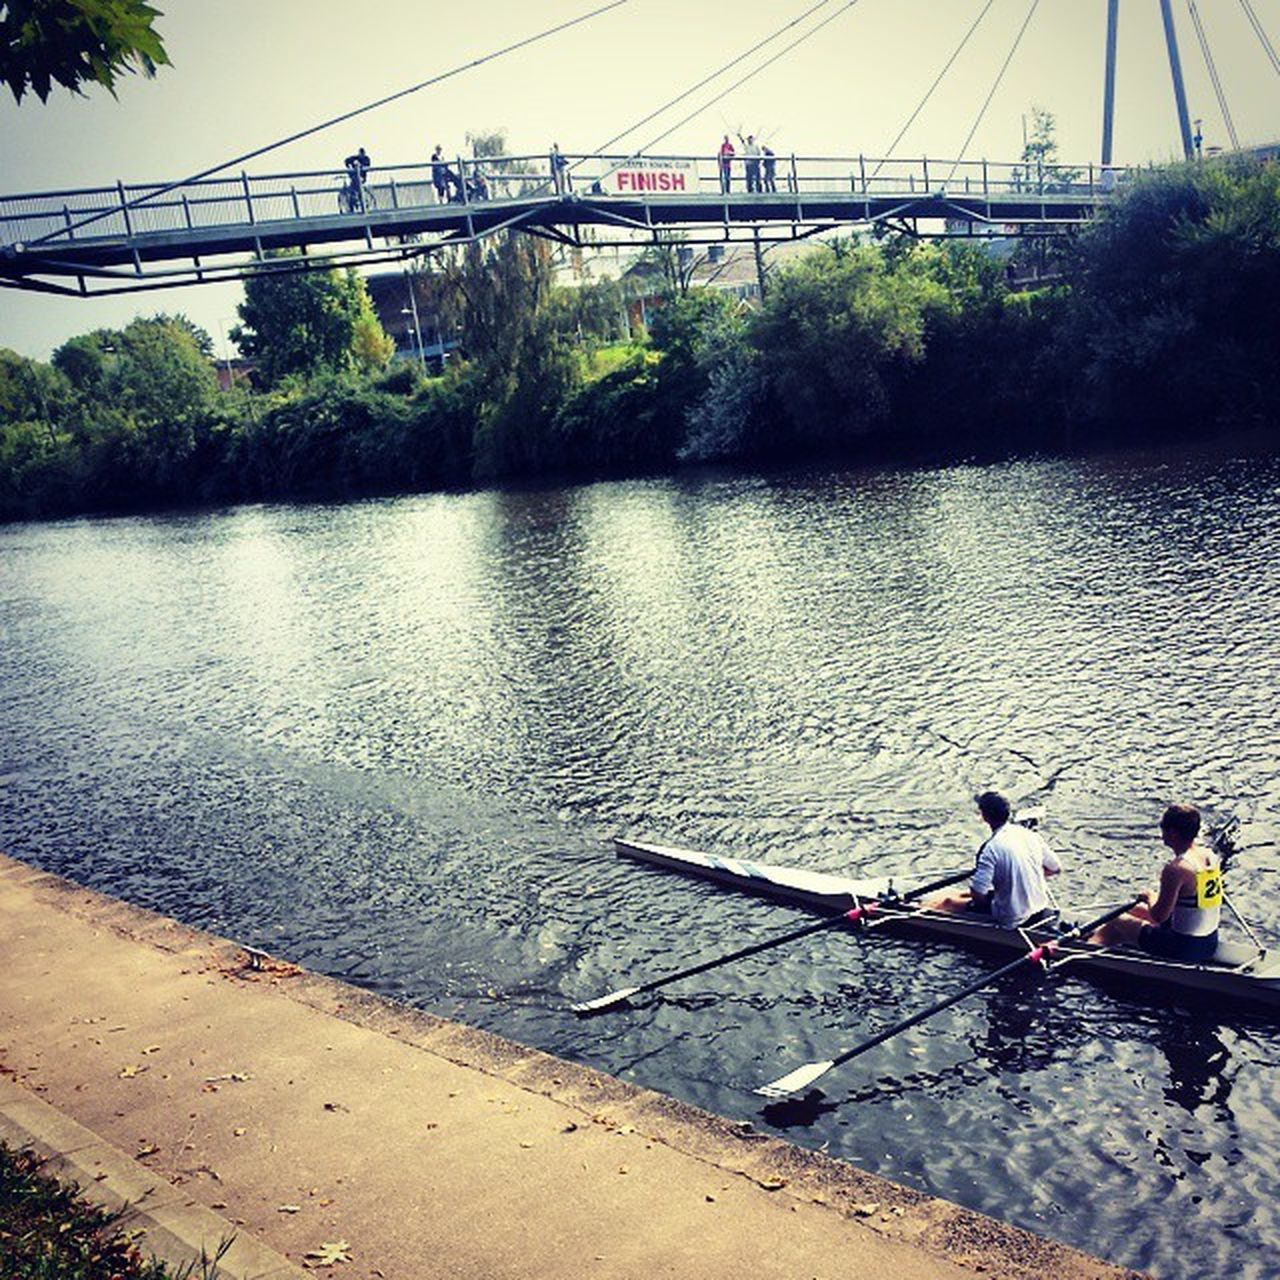 water, river, transportation, real people, day, nature, mode of transport, nautical vessel, bridge - man made structure, outdoors, sitting, tree, oar, two people, men, rowing, togetherness, sky, adult, people